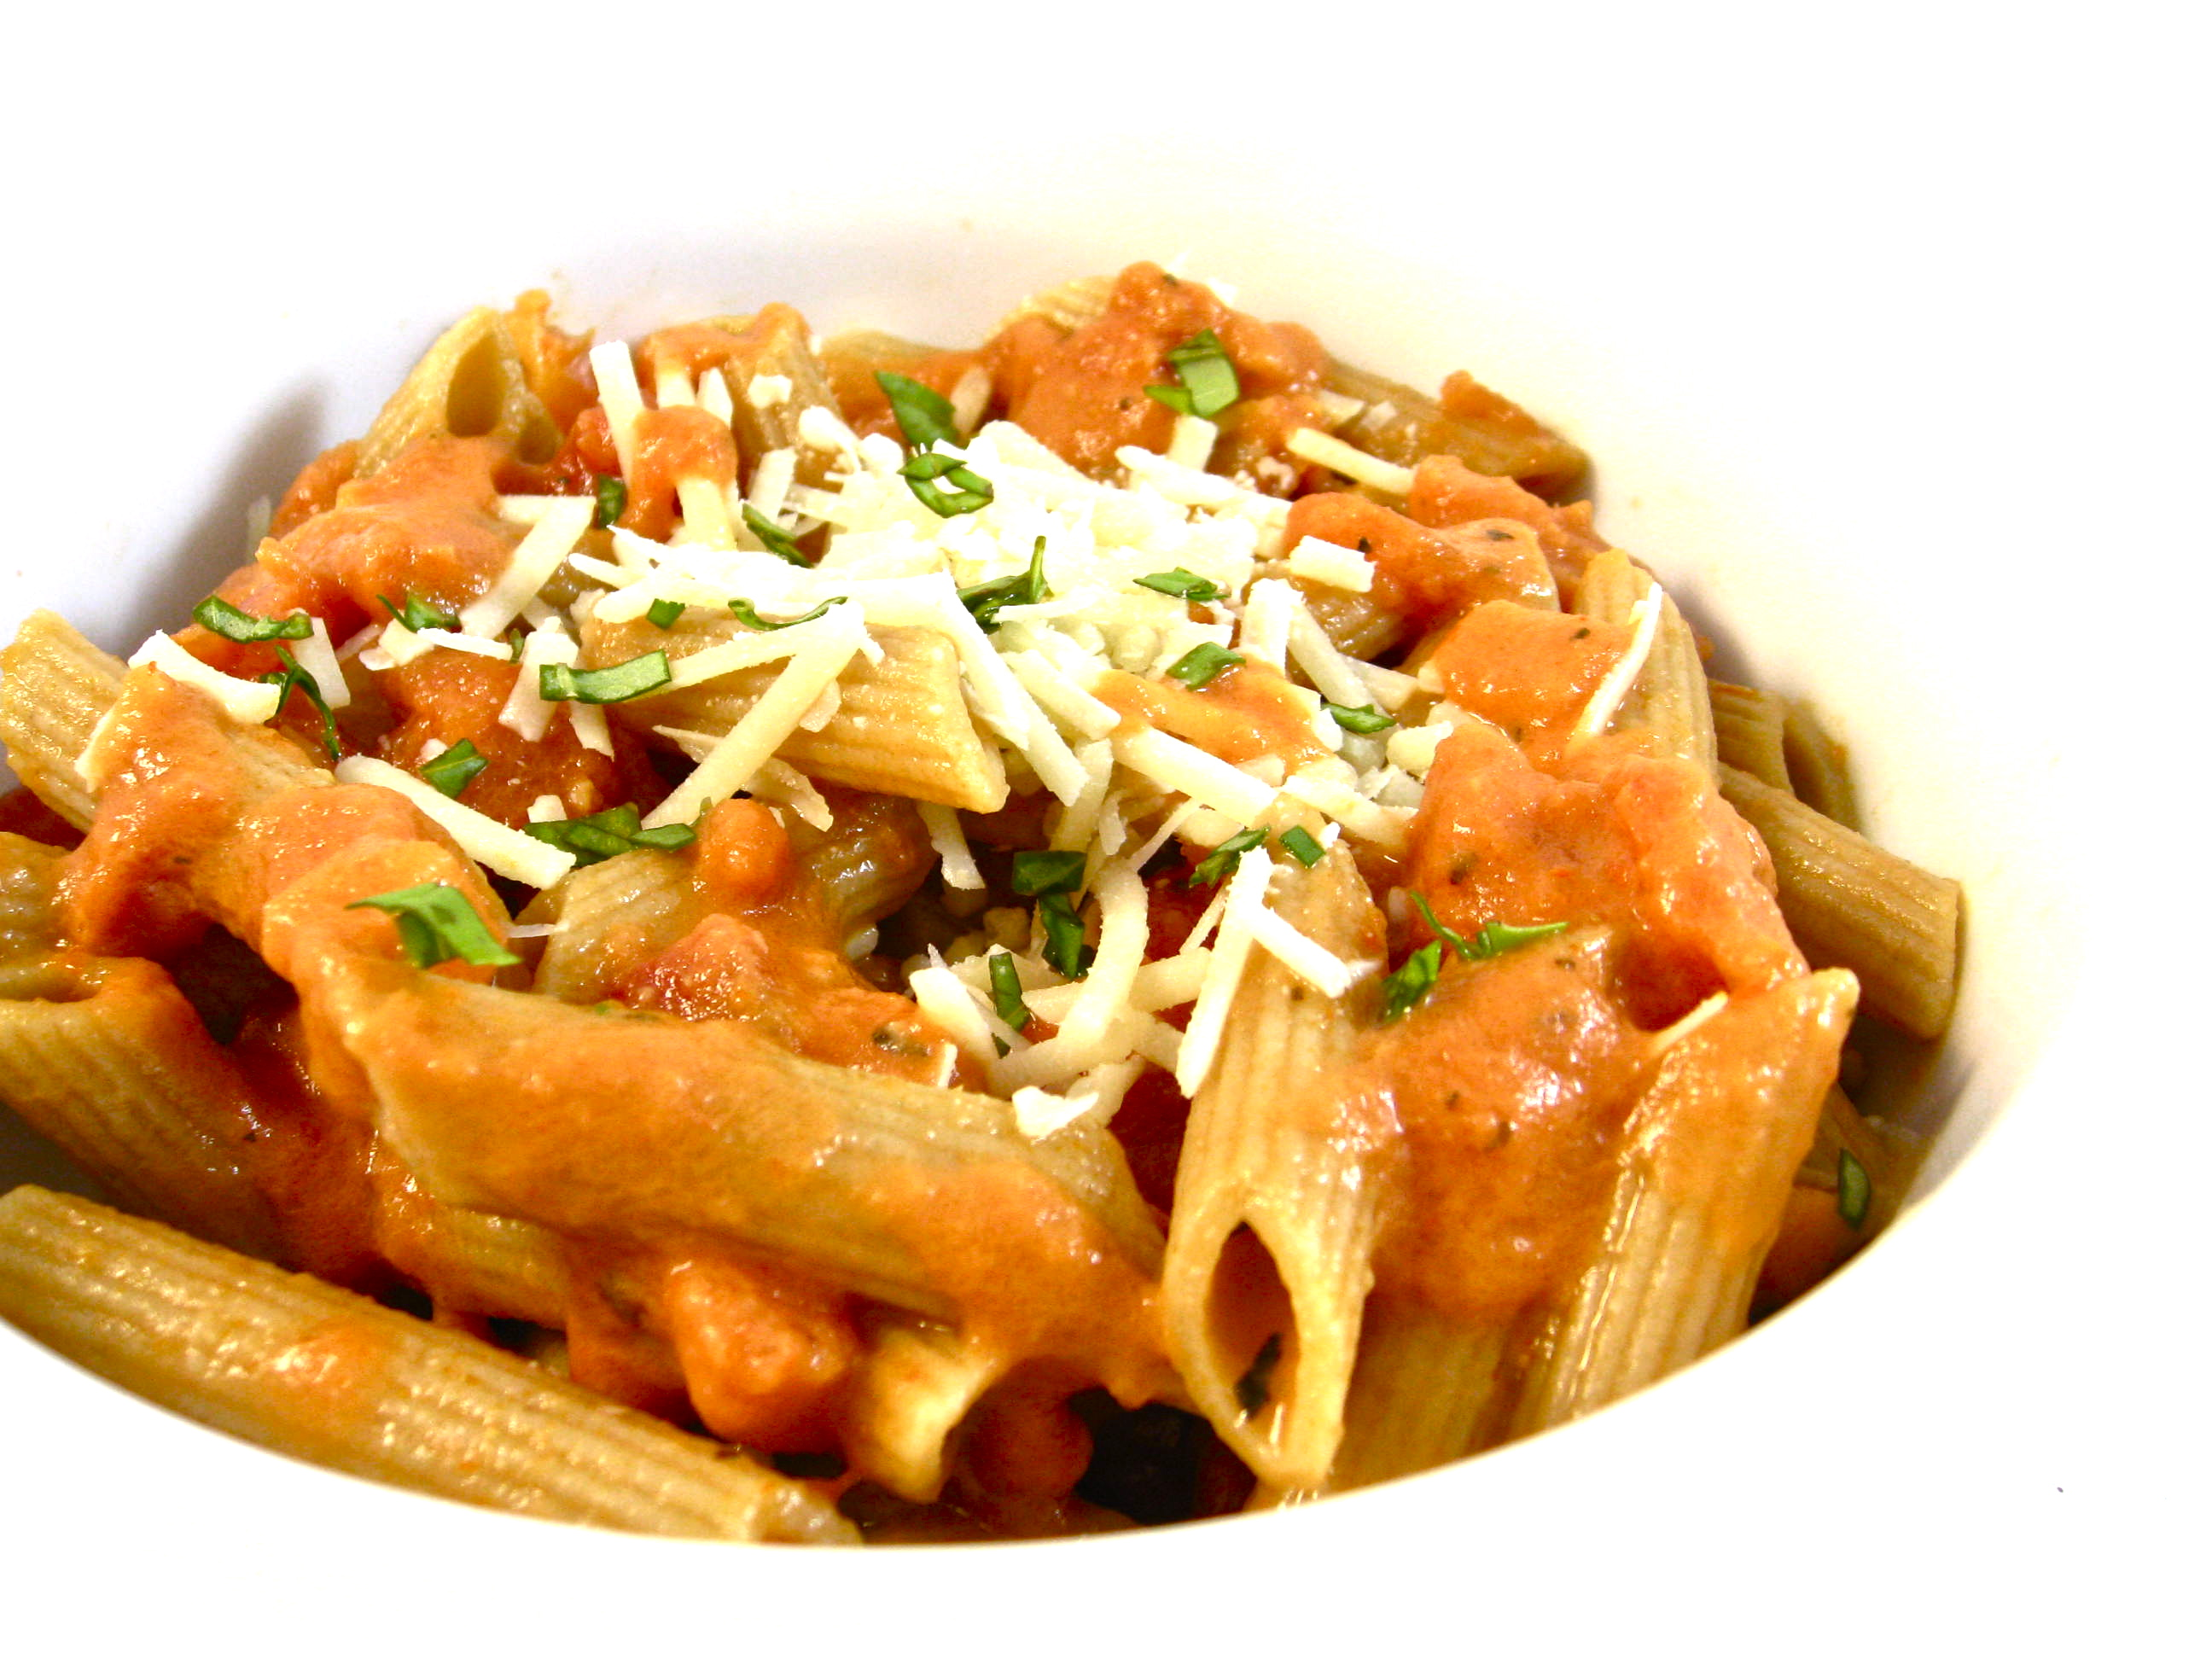 Magnifico, Skinny Penne Alla Vodka Sauce with Weight Watchers Points ...